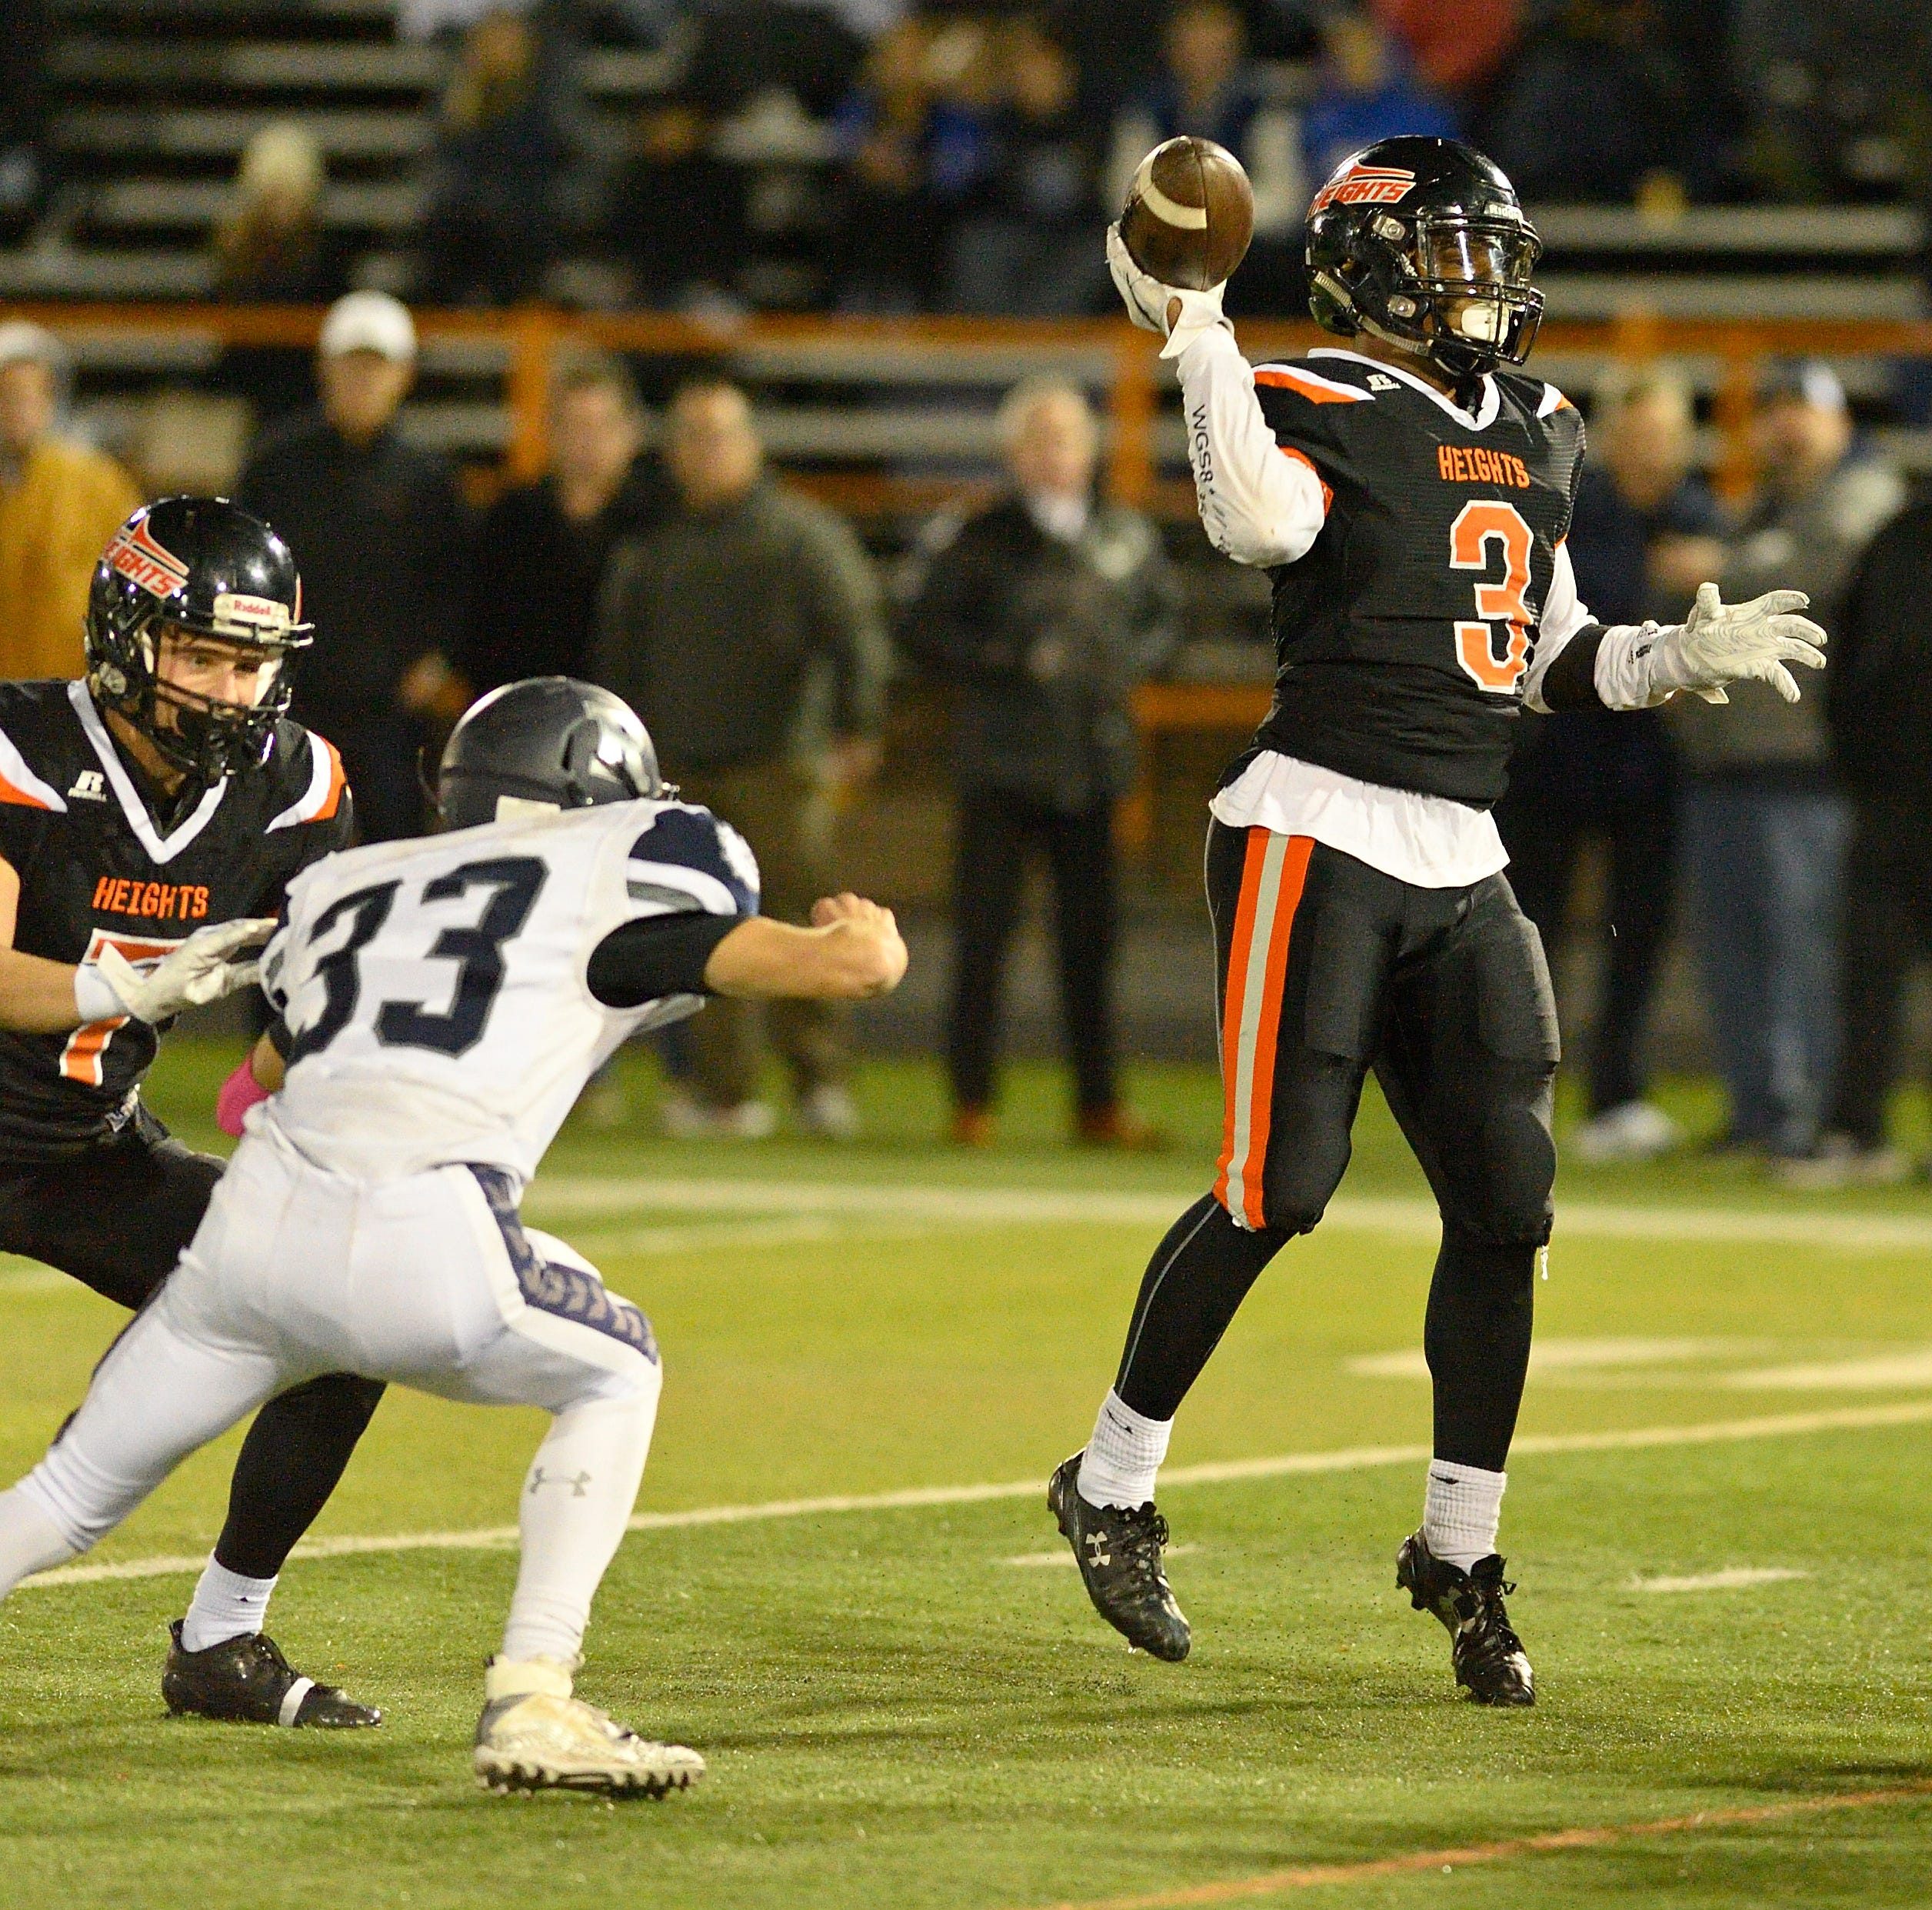 Hasbrouck Heights football wins third-straight sectional championshp